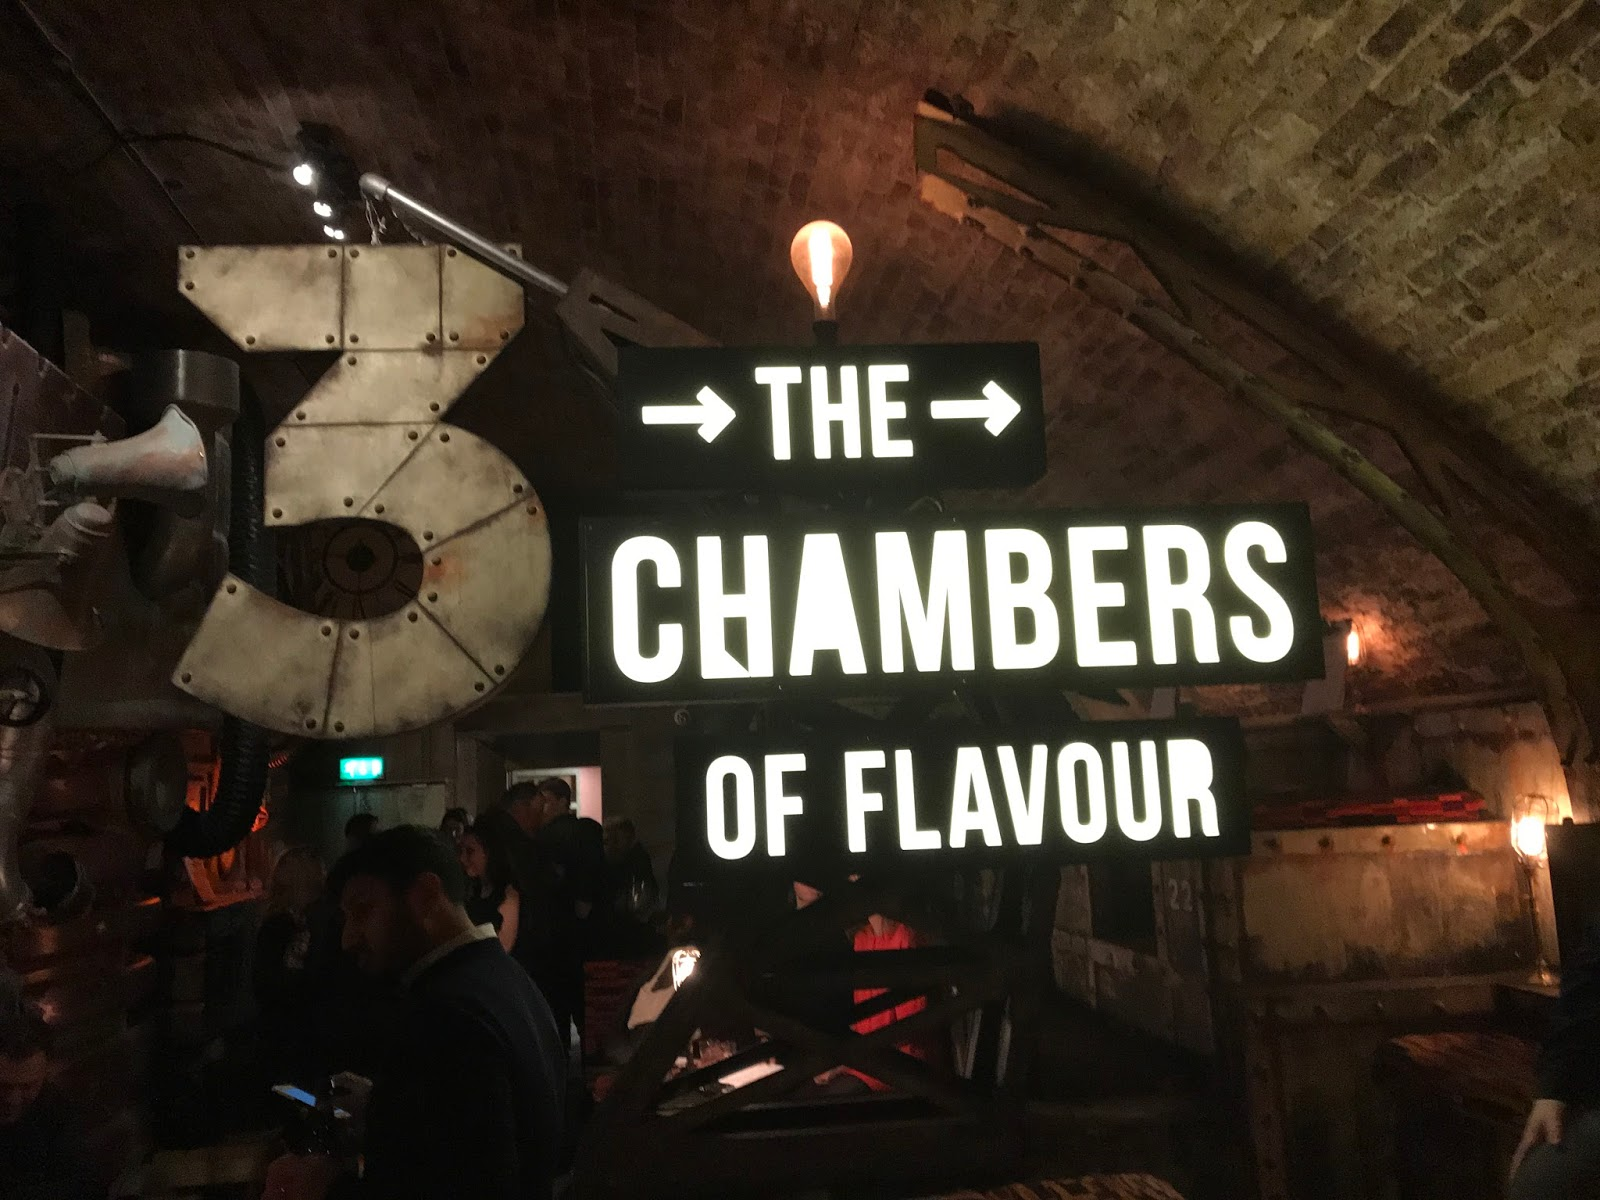 Overyourhead for Chamber of flavours